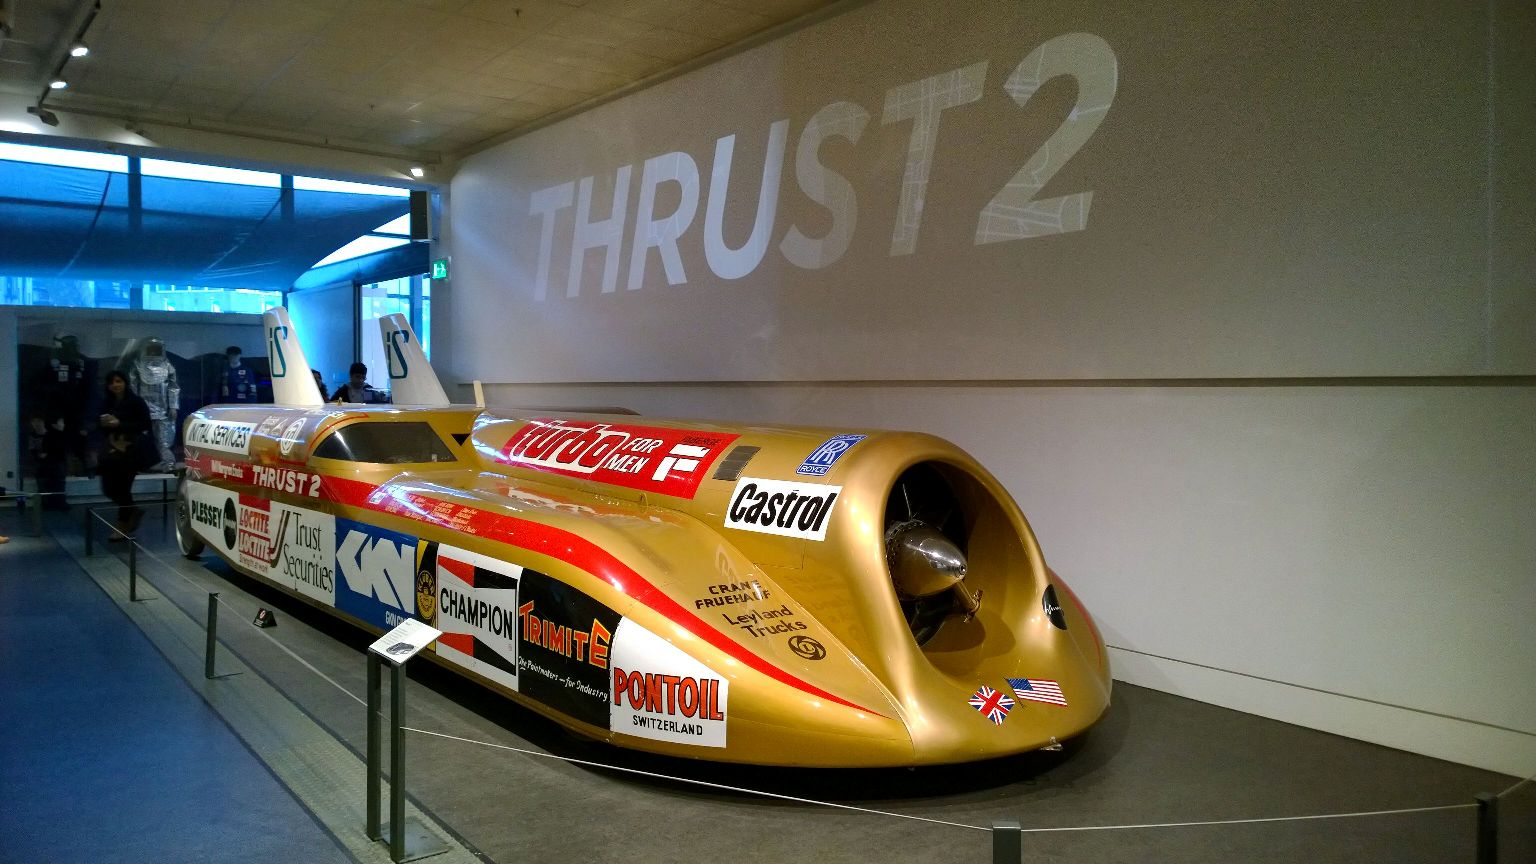 trust-muzeum-transportu-coventry